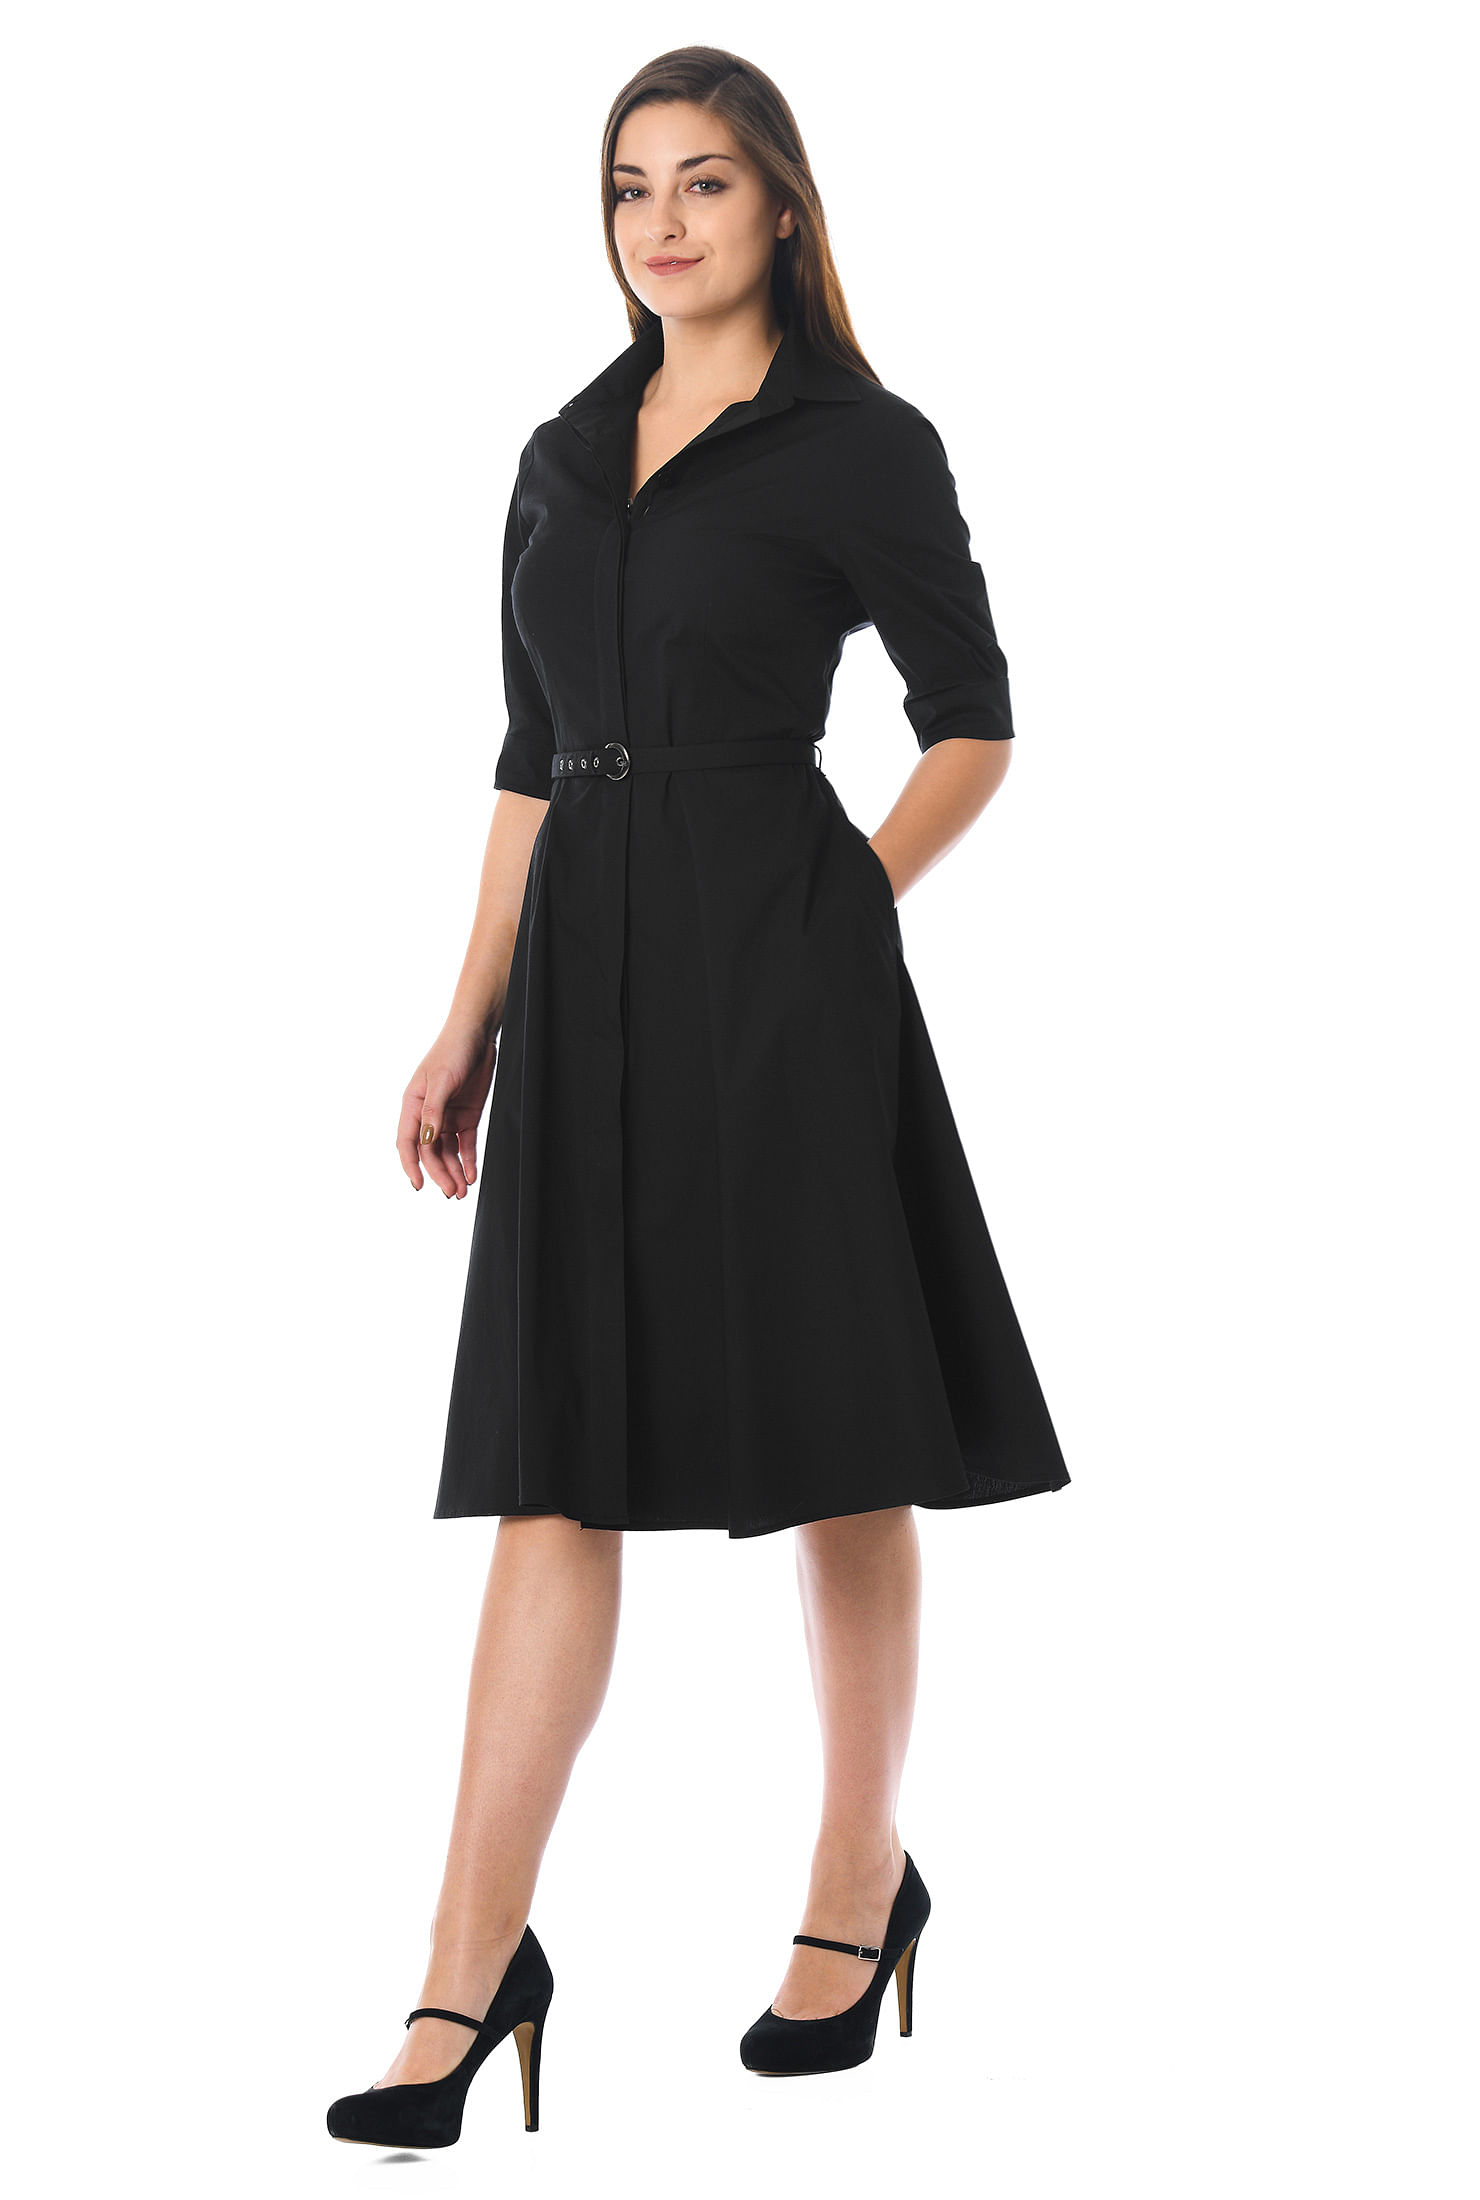 eShakti Women's Cotton poplin belted shirtdress